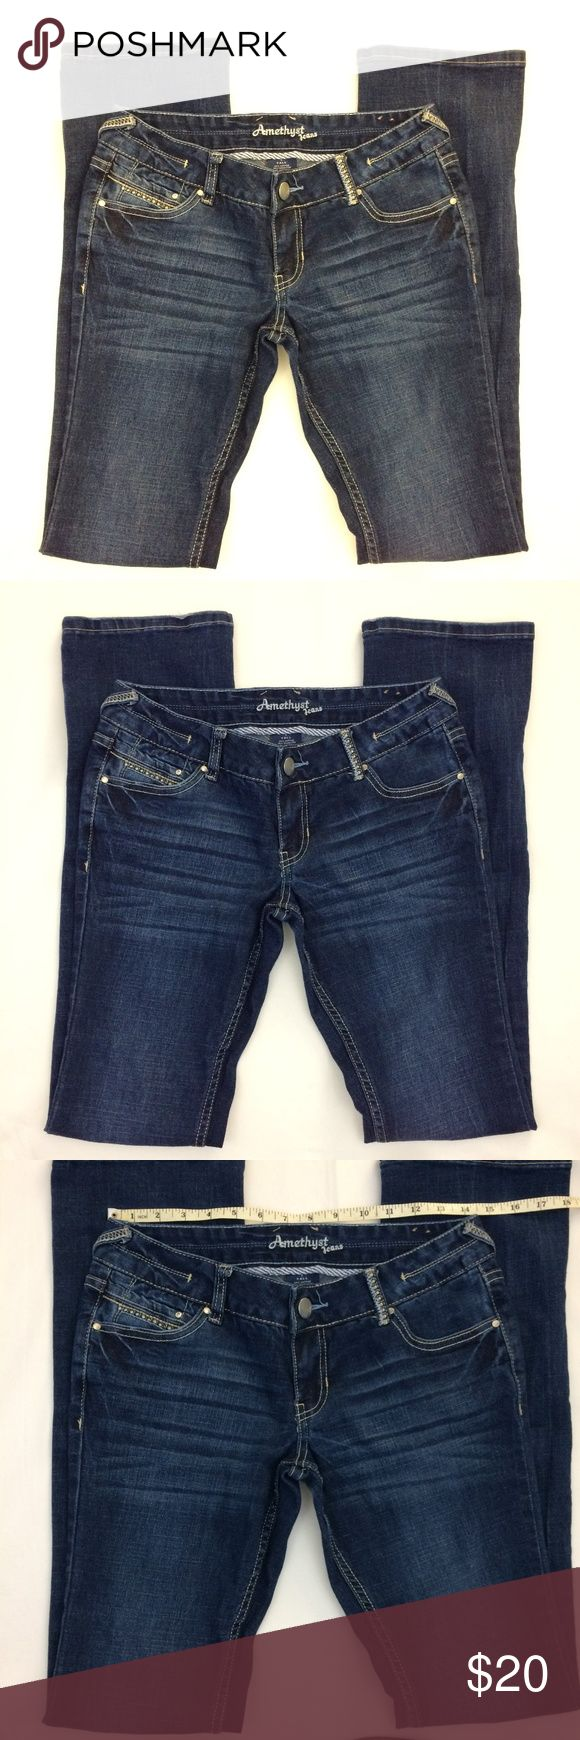 Amethyst Embelished Dark Wash Jeans Size 7 Tall Womens Embelished Dark Wash Jeans Size 7 Tall Amethyst Jeans Jeans